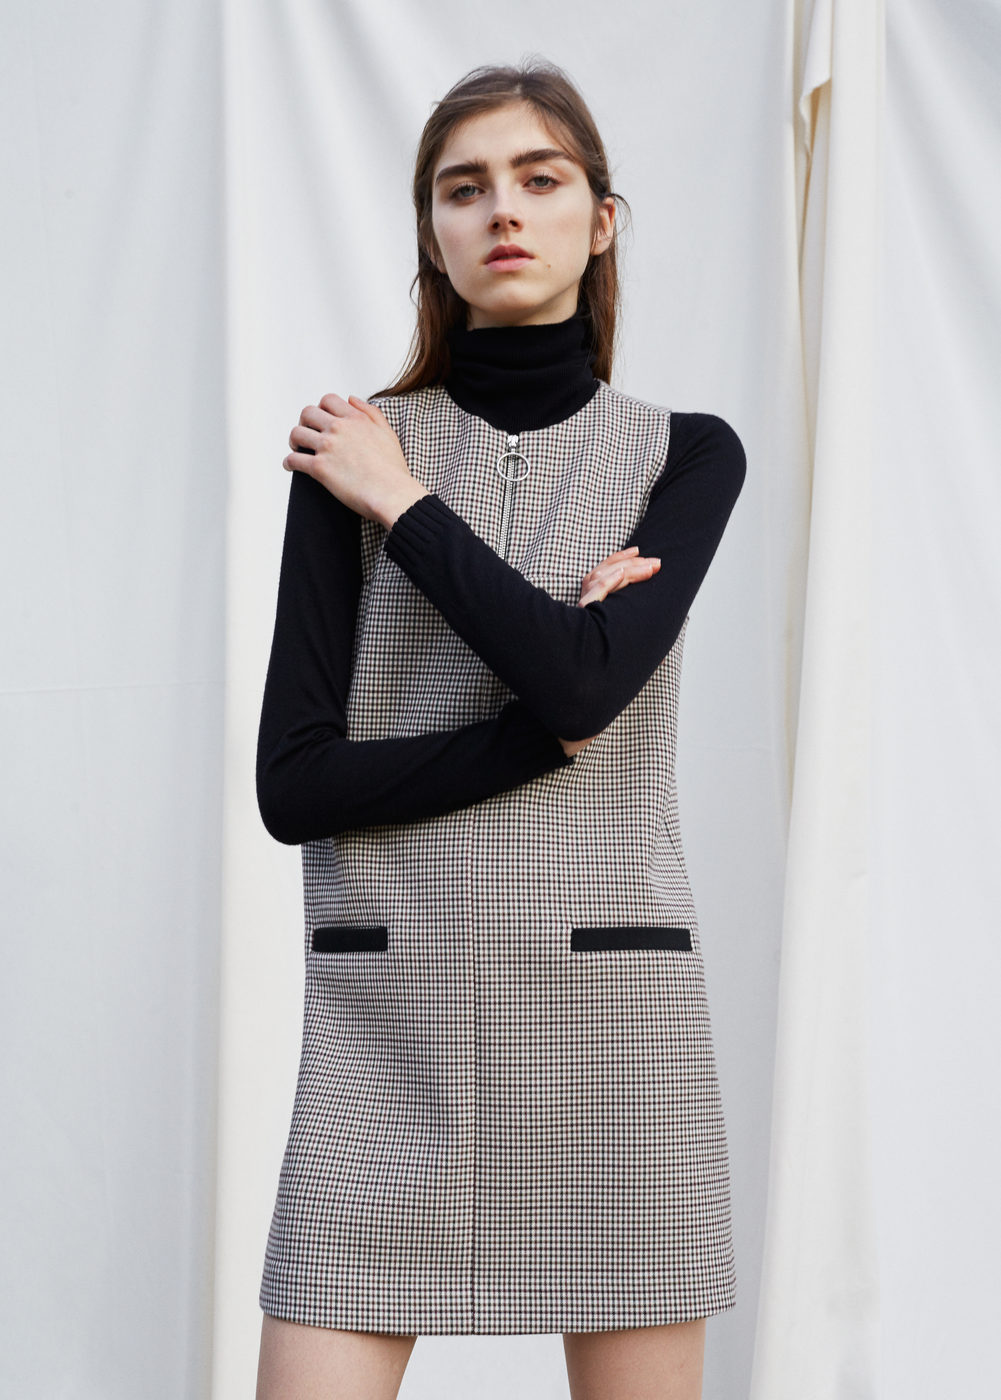 I love the mod rocker vibes of   this dress  . And it's perfect for layering with a turtleneck (aka my uniform all winter) or bell sleeved shirt underneath.